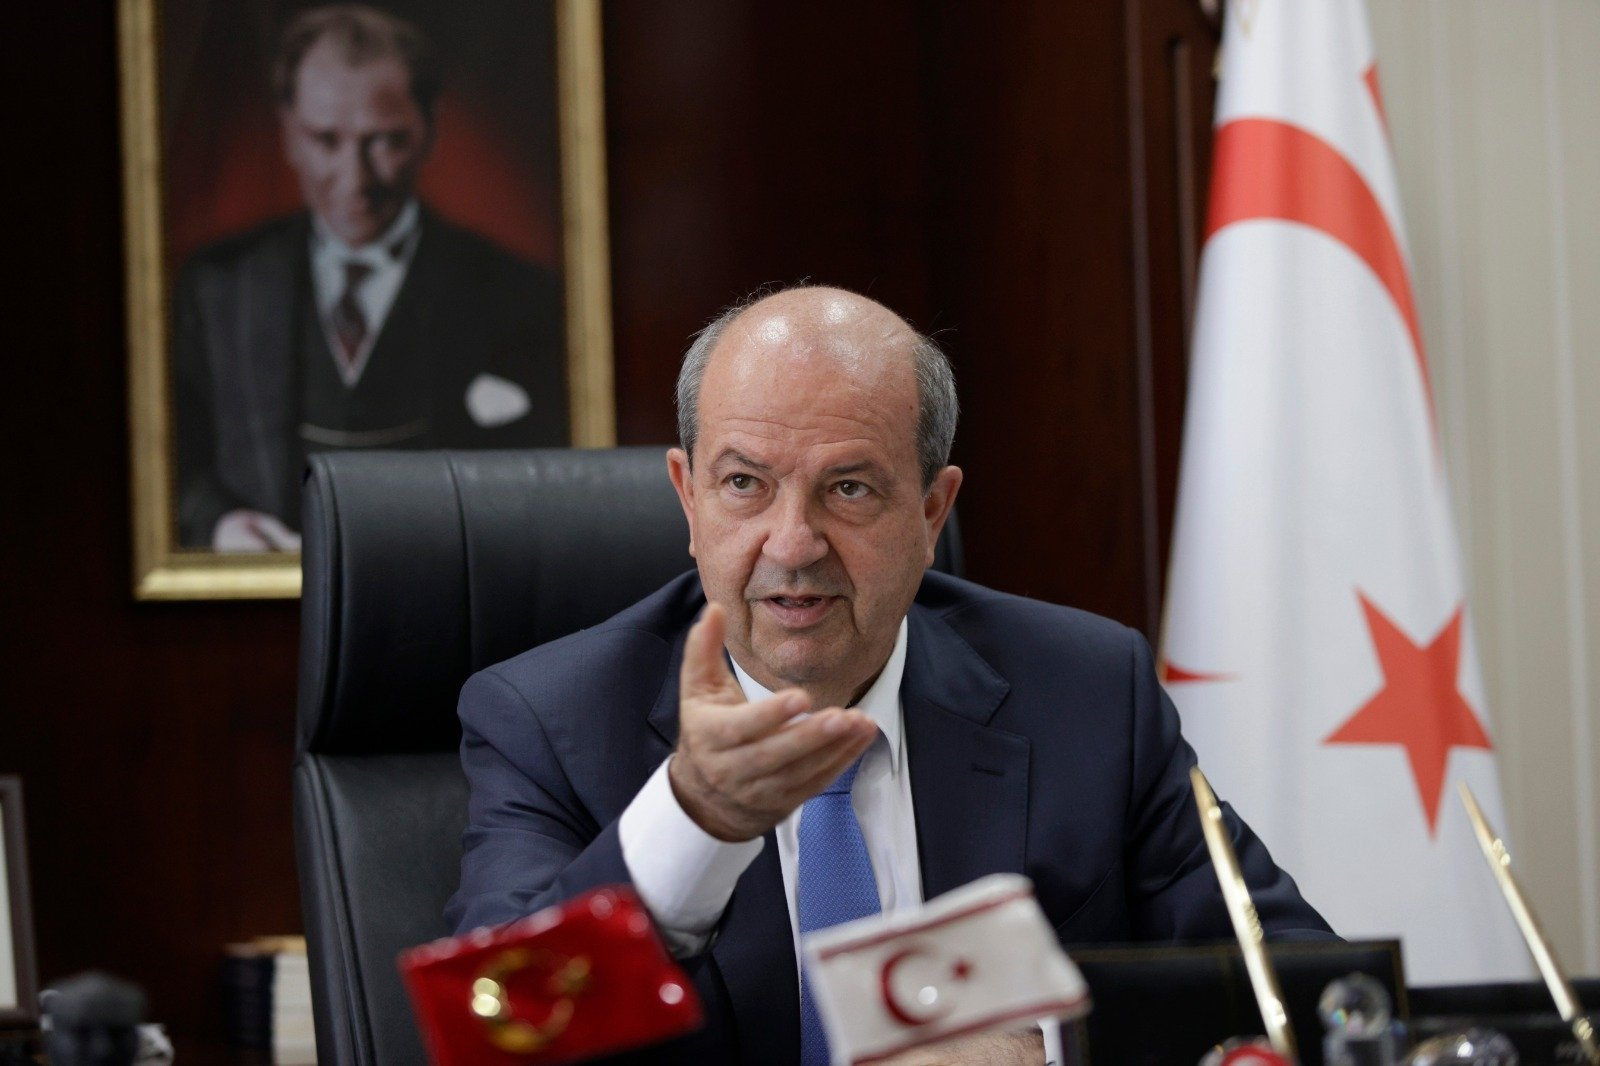 TRNC President Ersin Tatar gestures during an interview with TAK, in Lefkoşa, TRNC, June 29, 2021. (AA Photo)